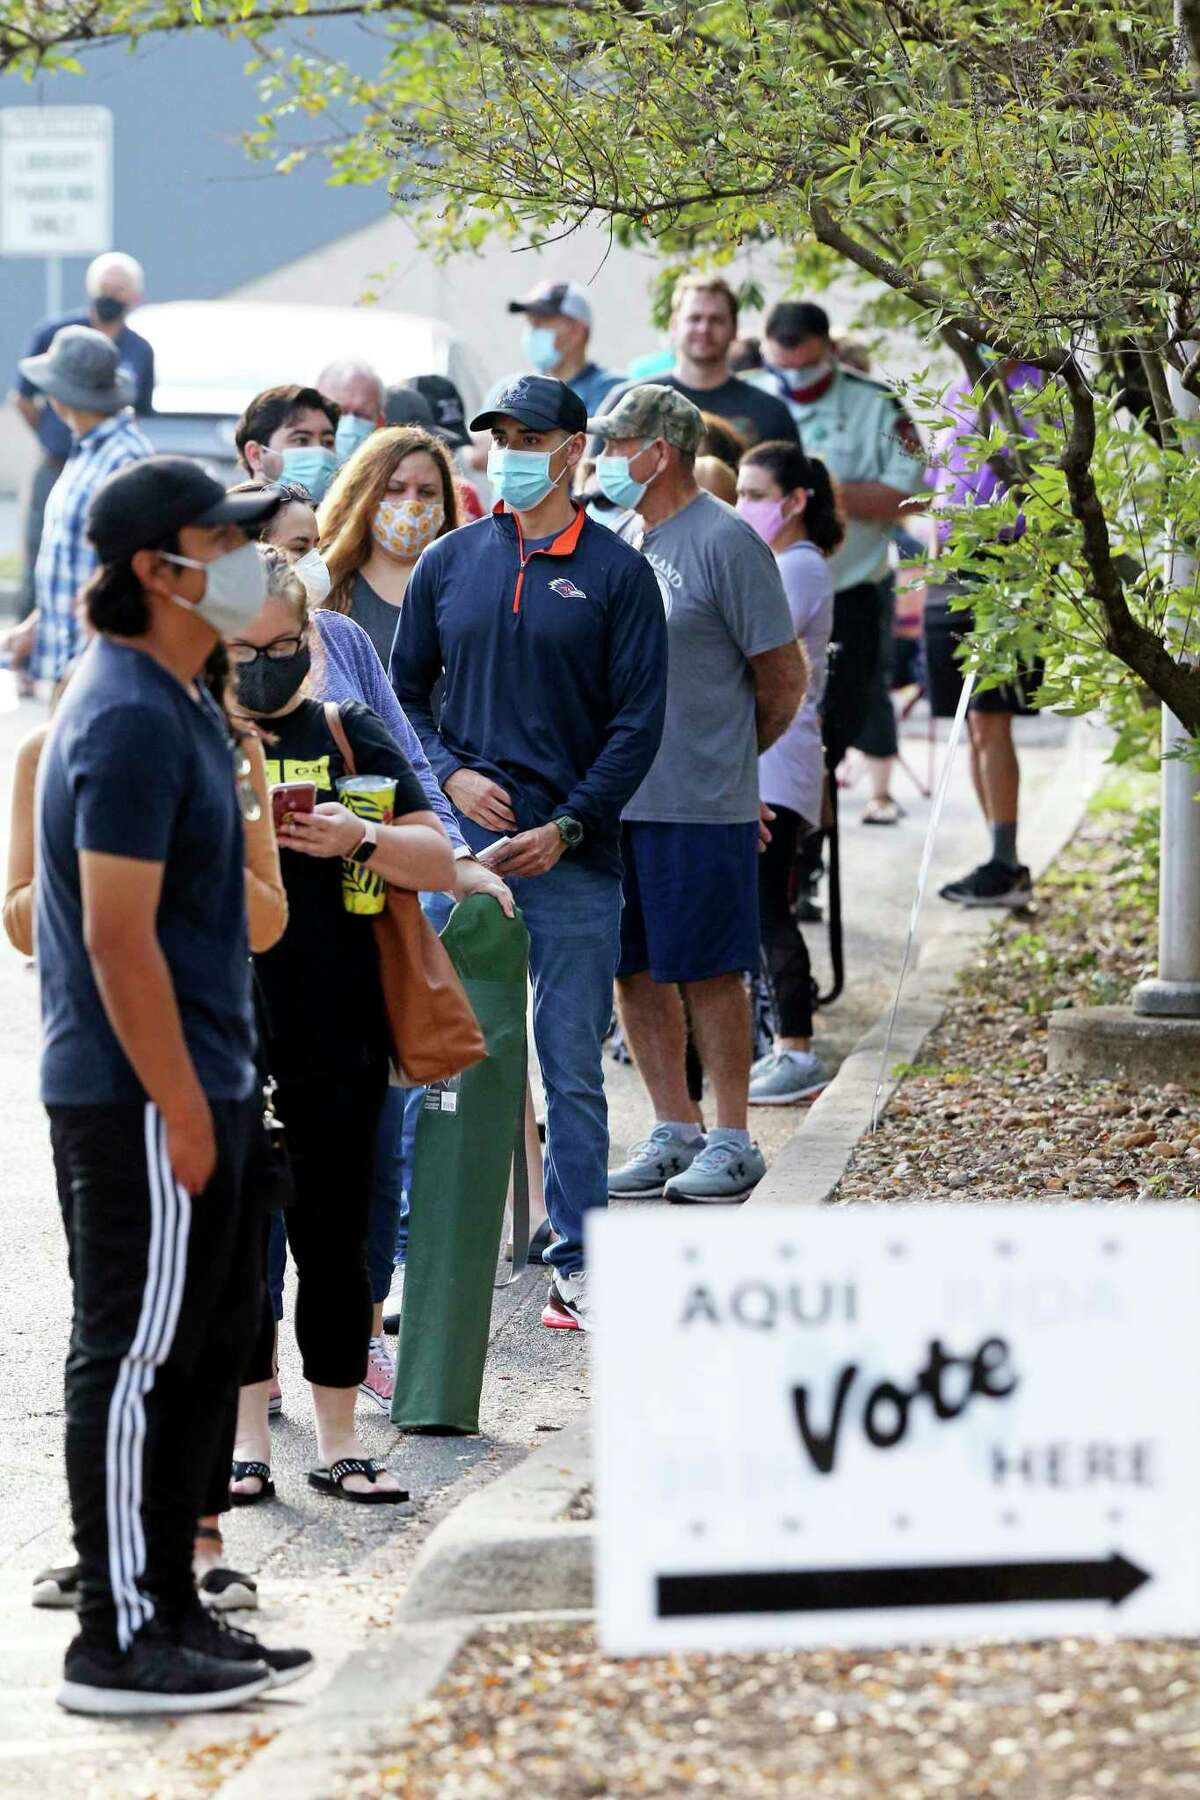 Voters wait in a line at the Brookhollow Library early voting site.